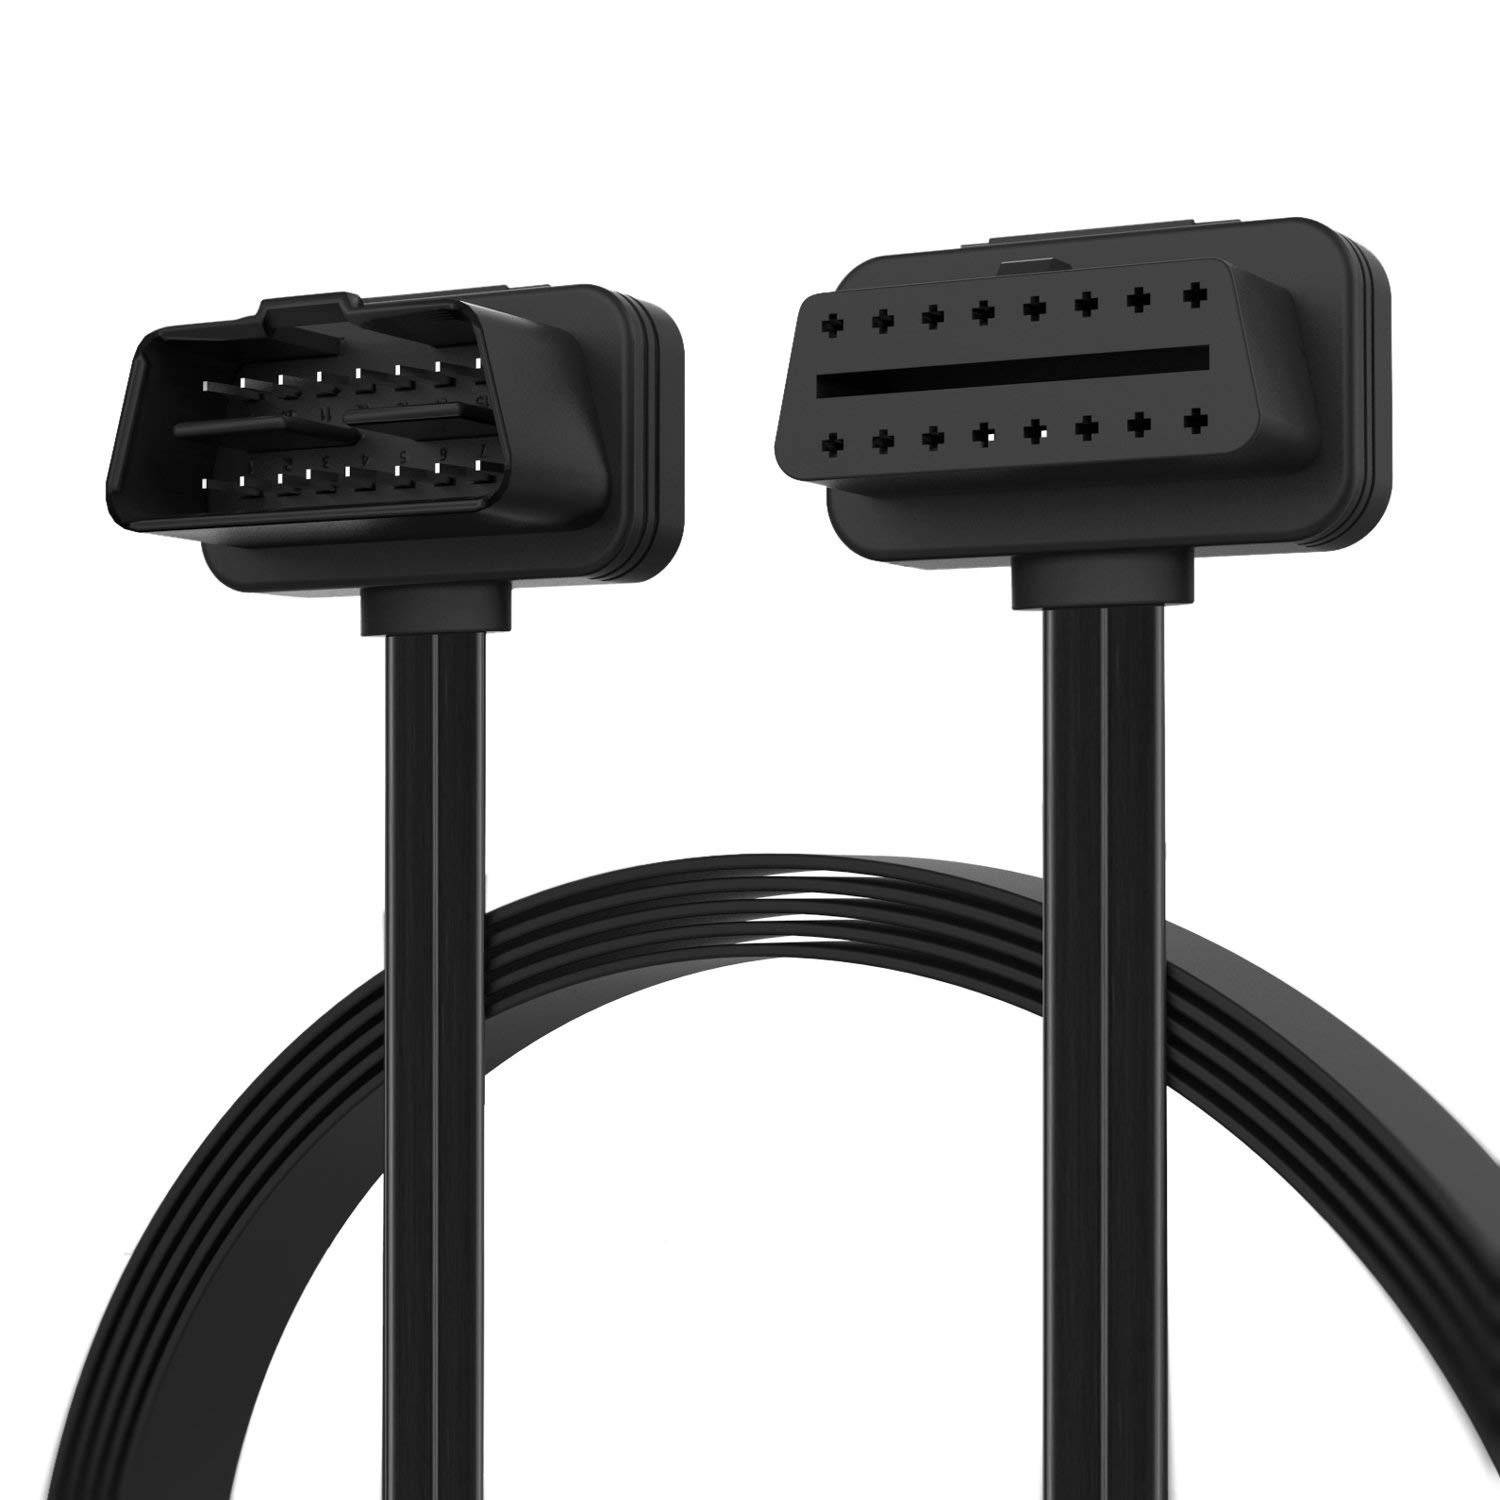 LAUNCH OBD 2 Cord 16 pin M/F Male to Female Right Angle Diagnostic Extension Cable